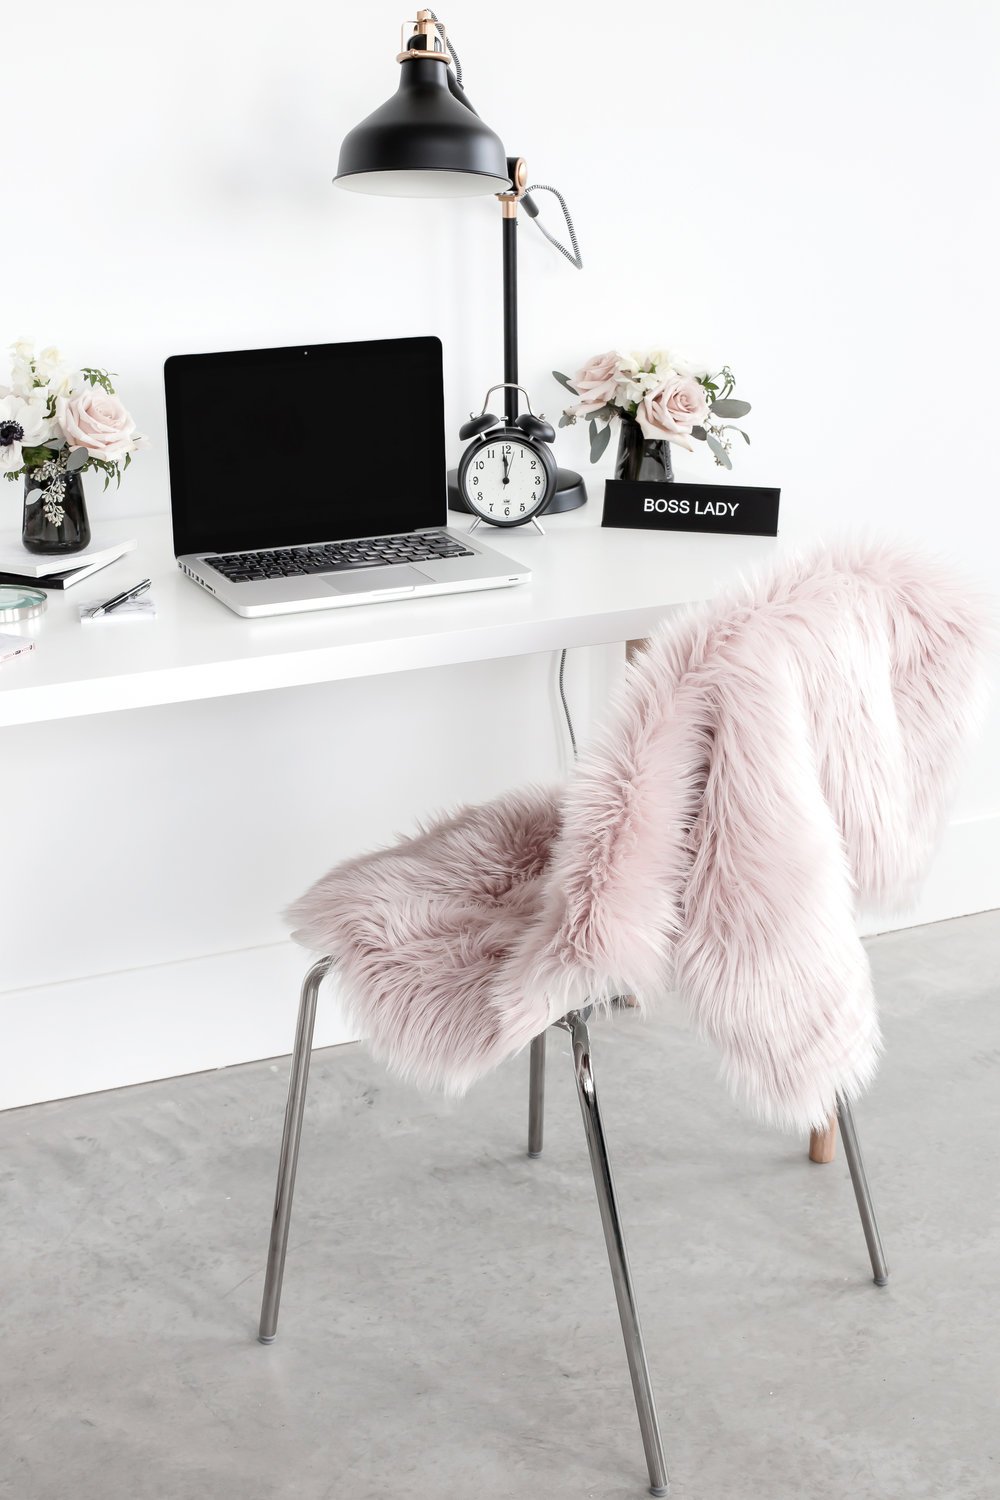 haute-stock-photography-muted-blush-black-workspace-final-35.jpg